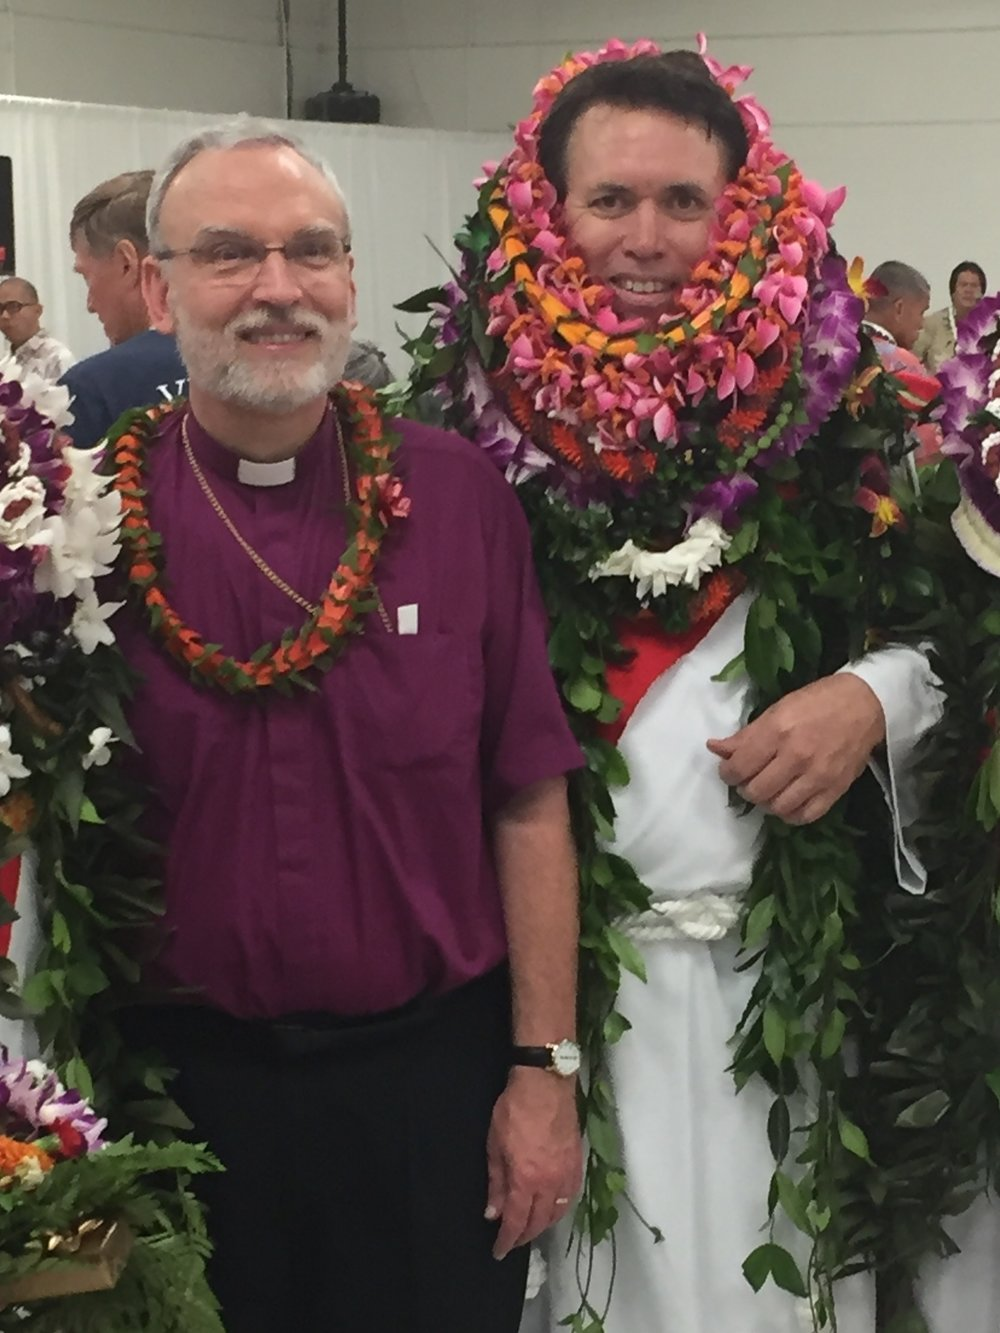 Father Nahoa at his ordination with Bishop Fitzpatrick.